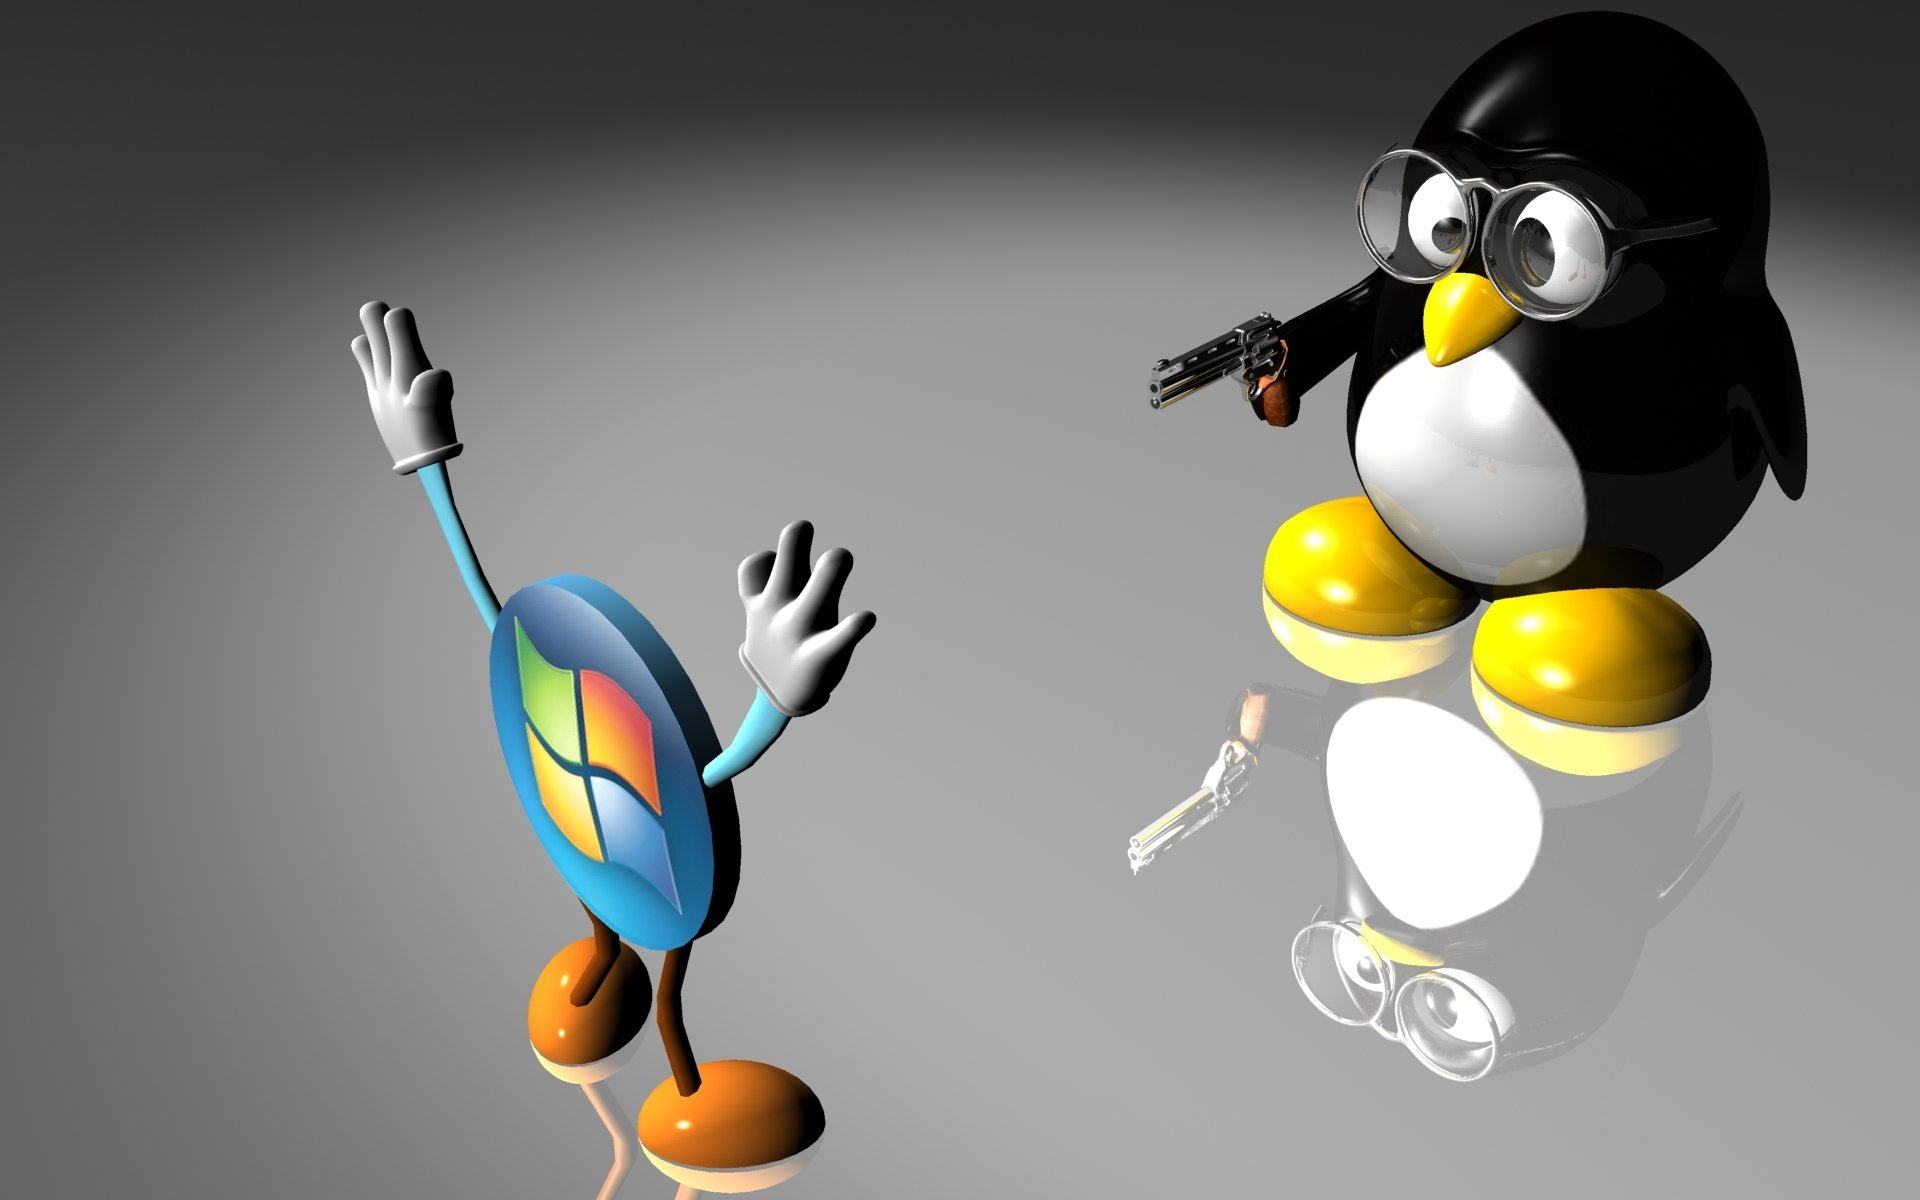 Technologie - Linux  Penguin Arbre Bleu Fight Gun Humour Produits Windows Fond d'écran